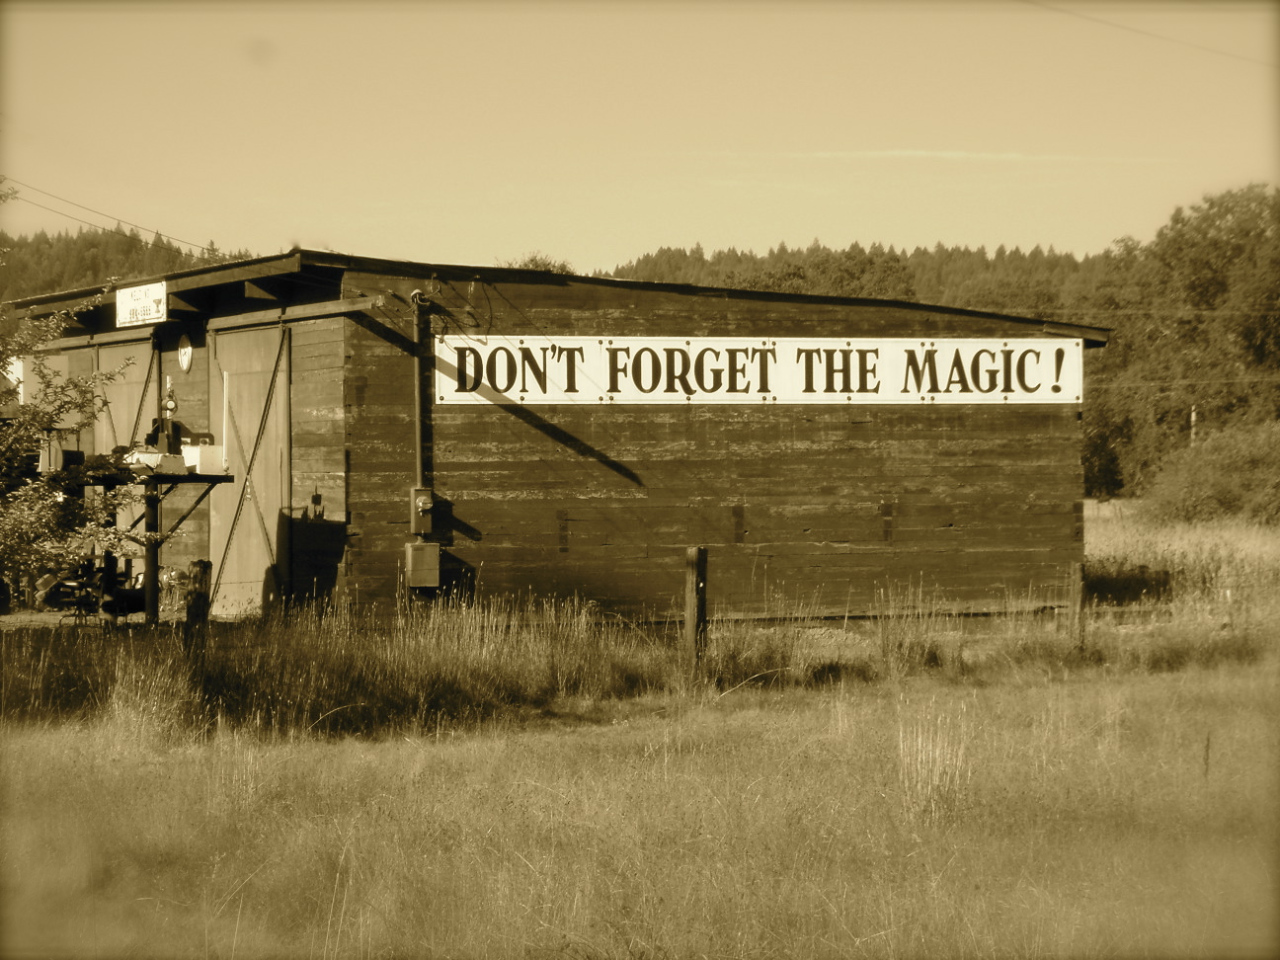 In case we need a reminder...Don't Forget the Magic! (Photo Credit: Deborah Parrish)